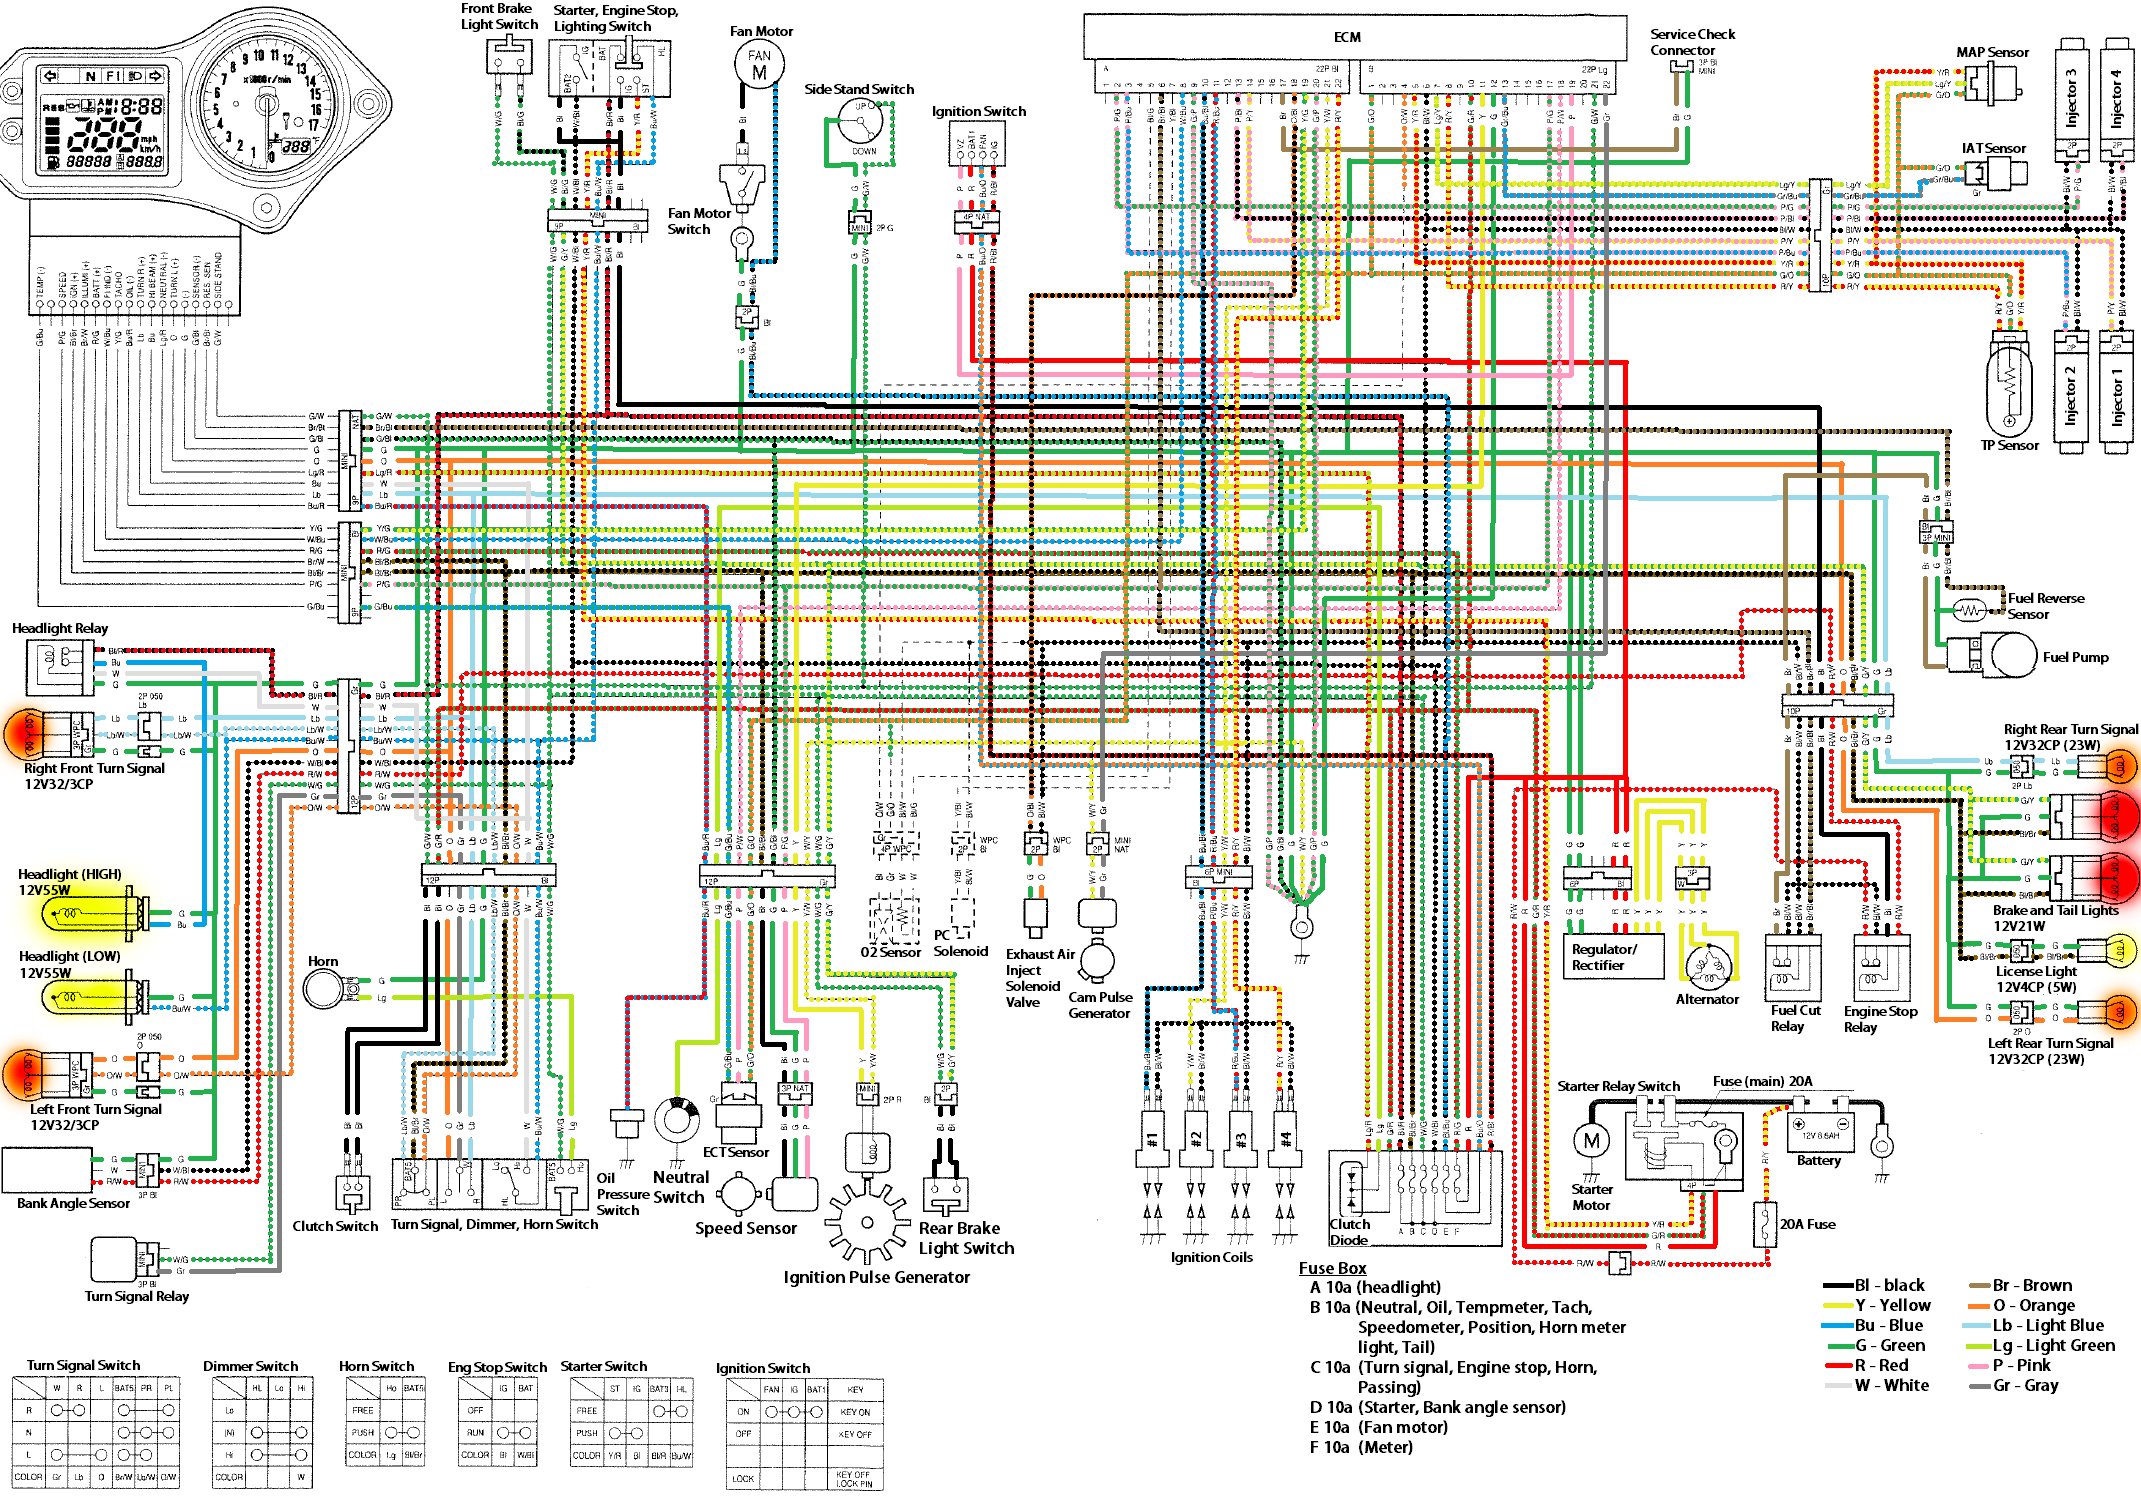 Wiring_diagram_cbr600f4i_2001 2003_color?resize\\=300%2C210 2005 cbr f4i wiring diagram zx12 wiring diagram, gsxr 600 wiring 07 gsxr 600 wiring diagram at bayanpartner.co